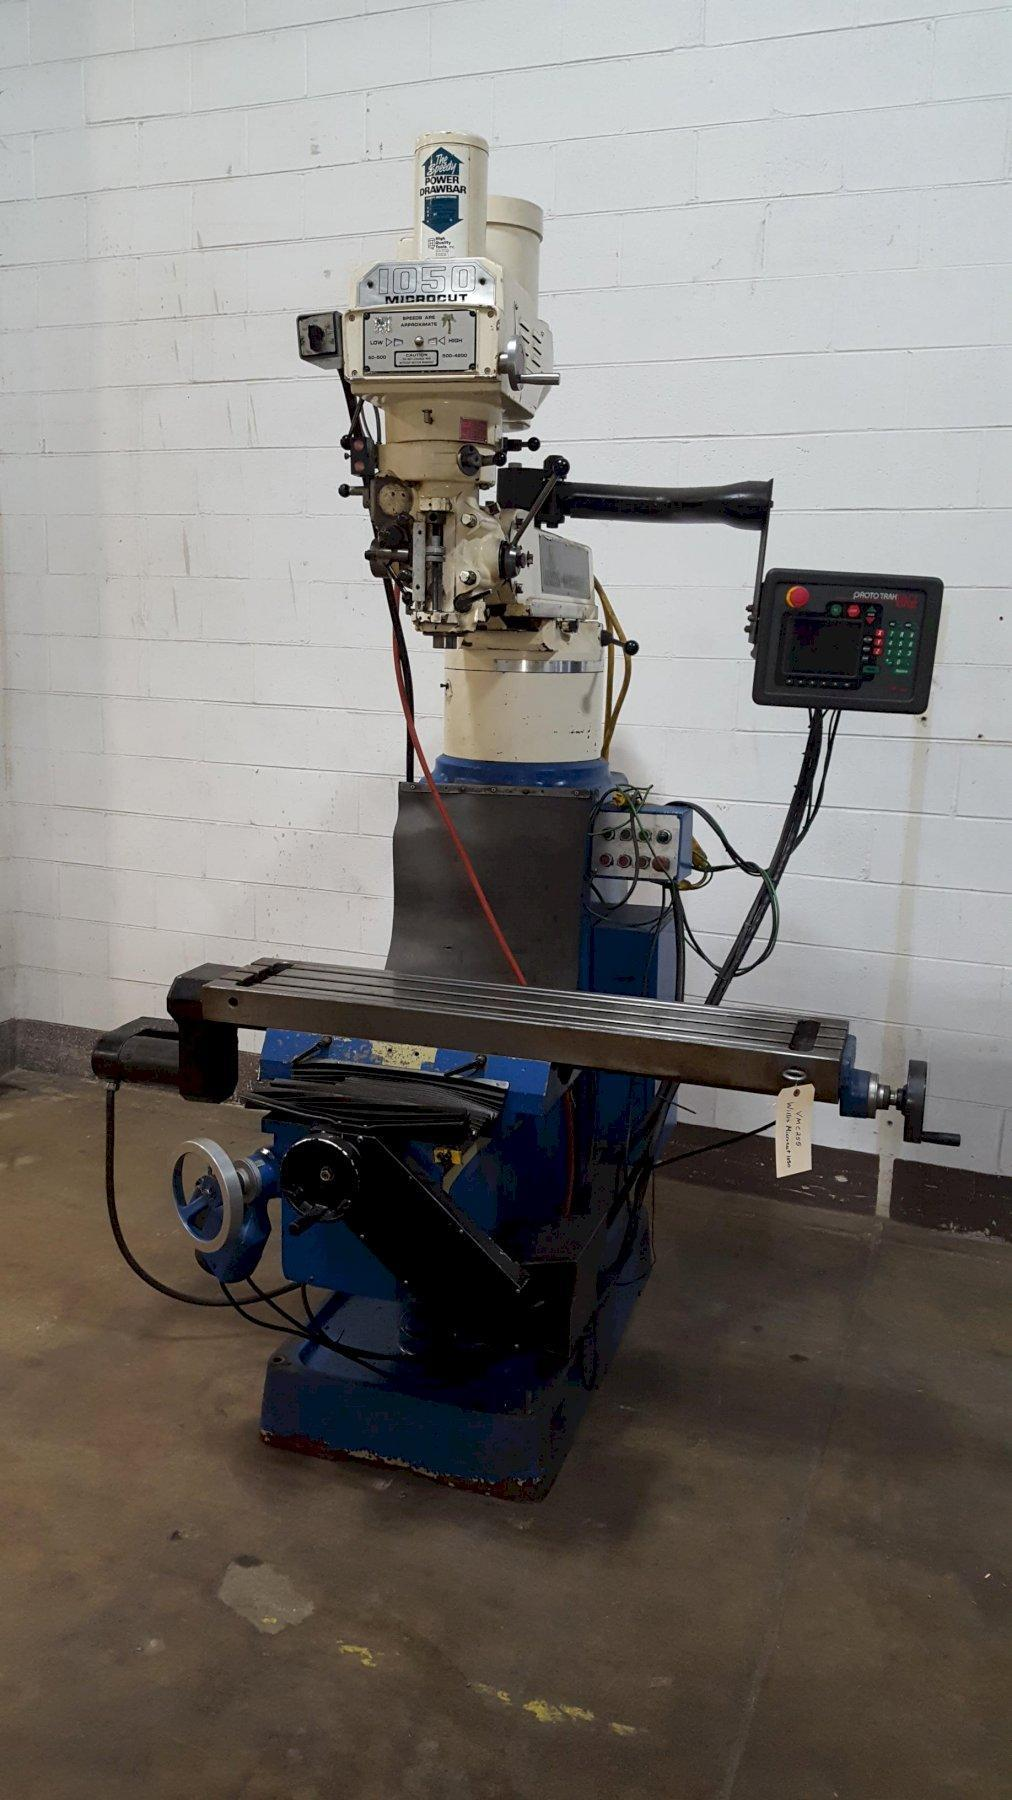 Willis (Bridgeport type) Model 1050 II CNC Vertical  Mill with Southwest Industries SWI Prototrak Edge CNC Teach Controls.